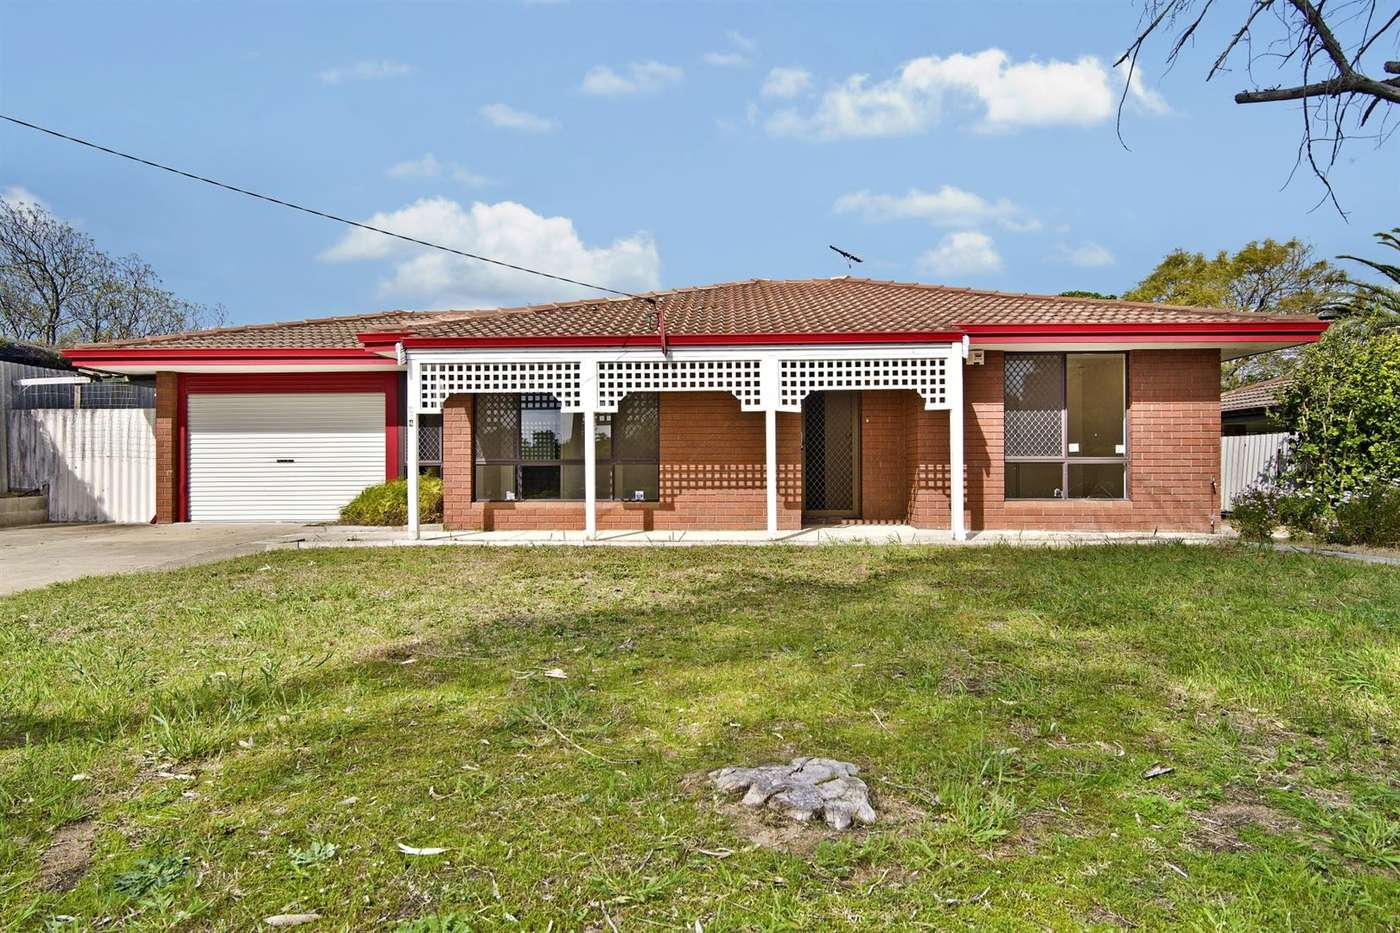 Main view of Homely house listing, 154 Simpson Avenue, Rockingham, WA 6168